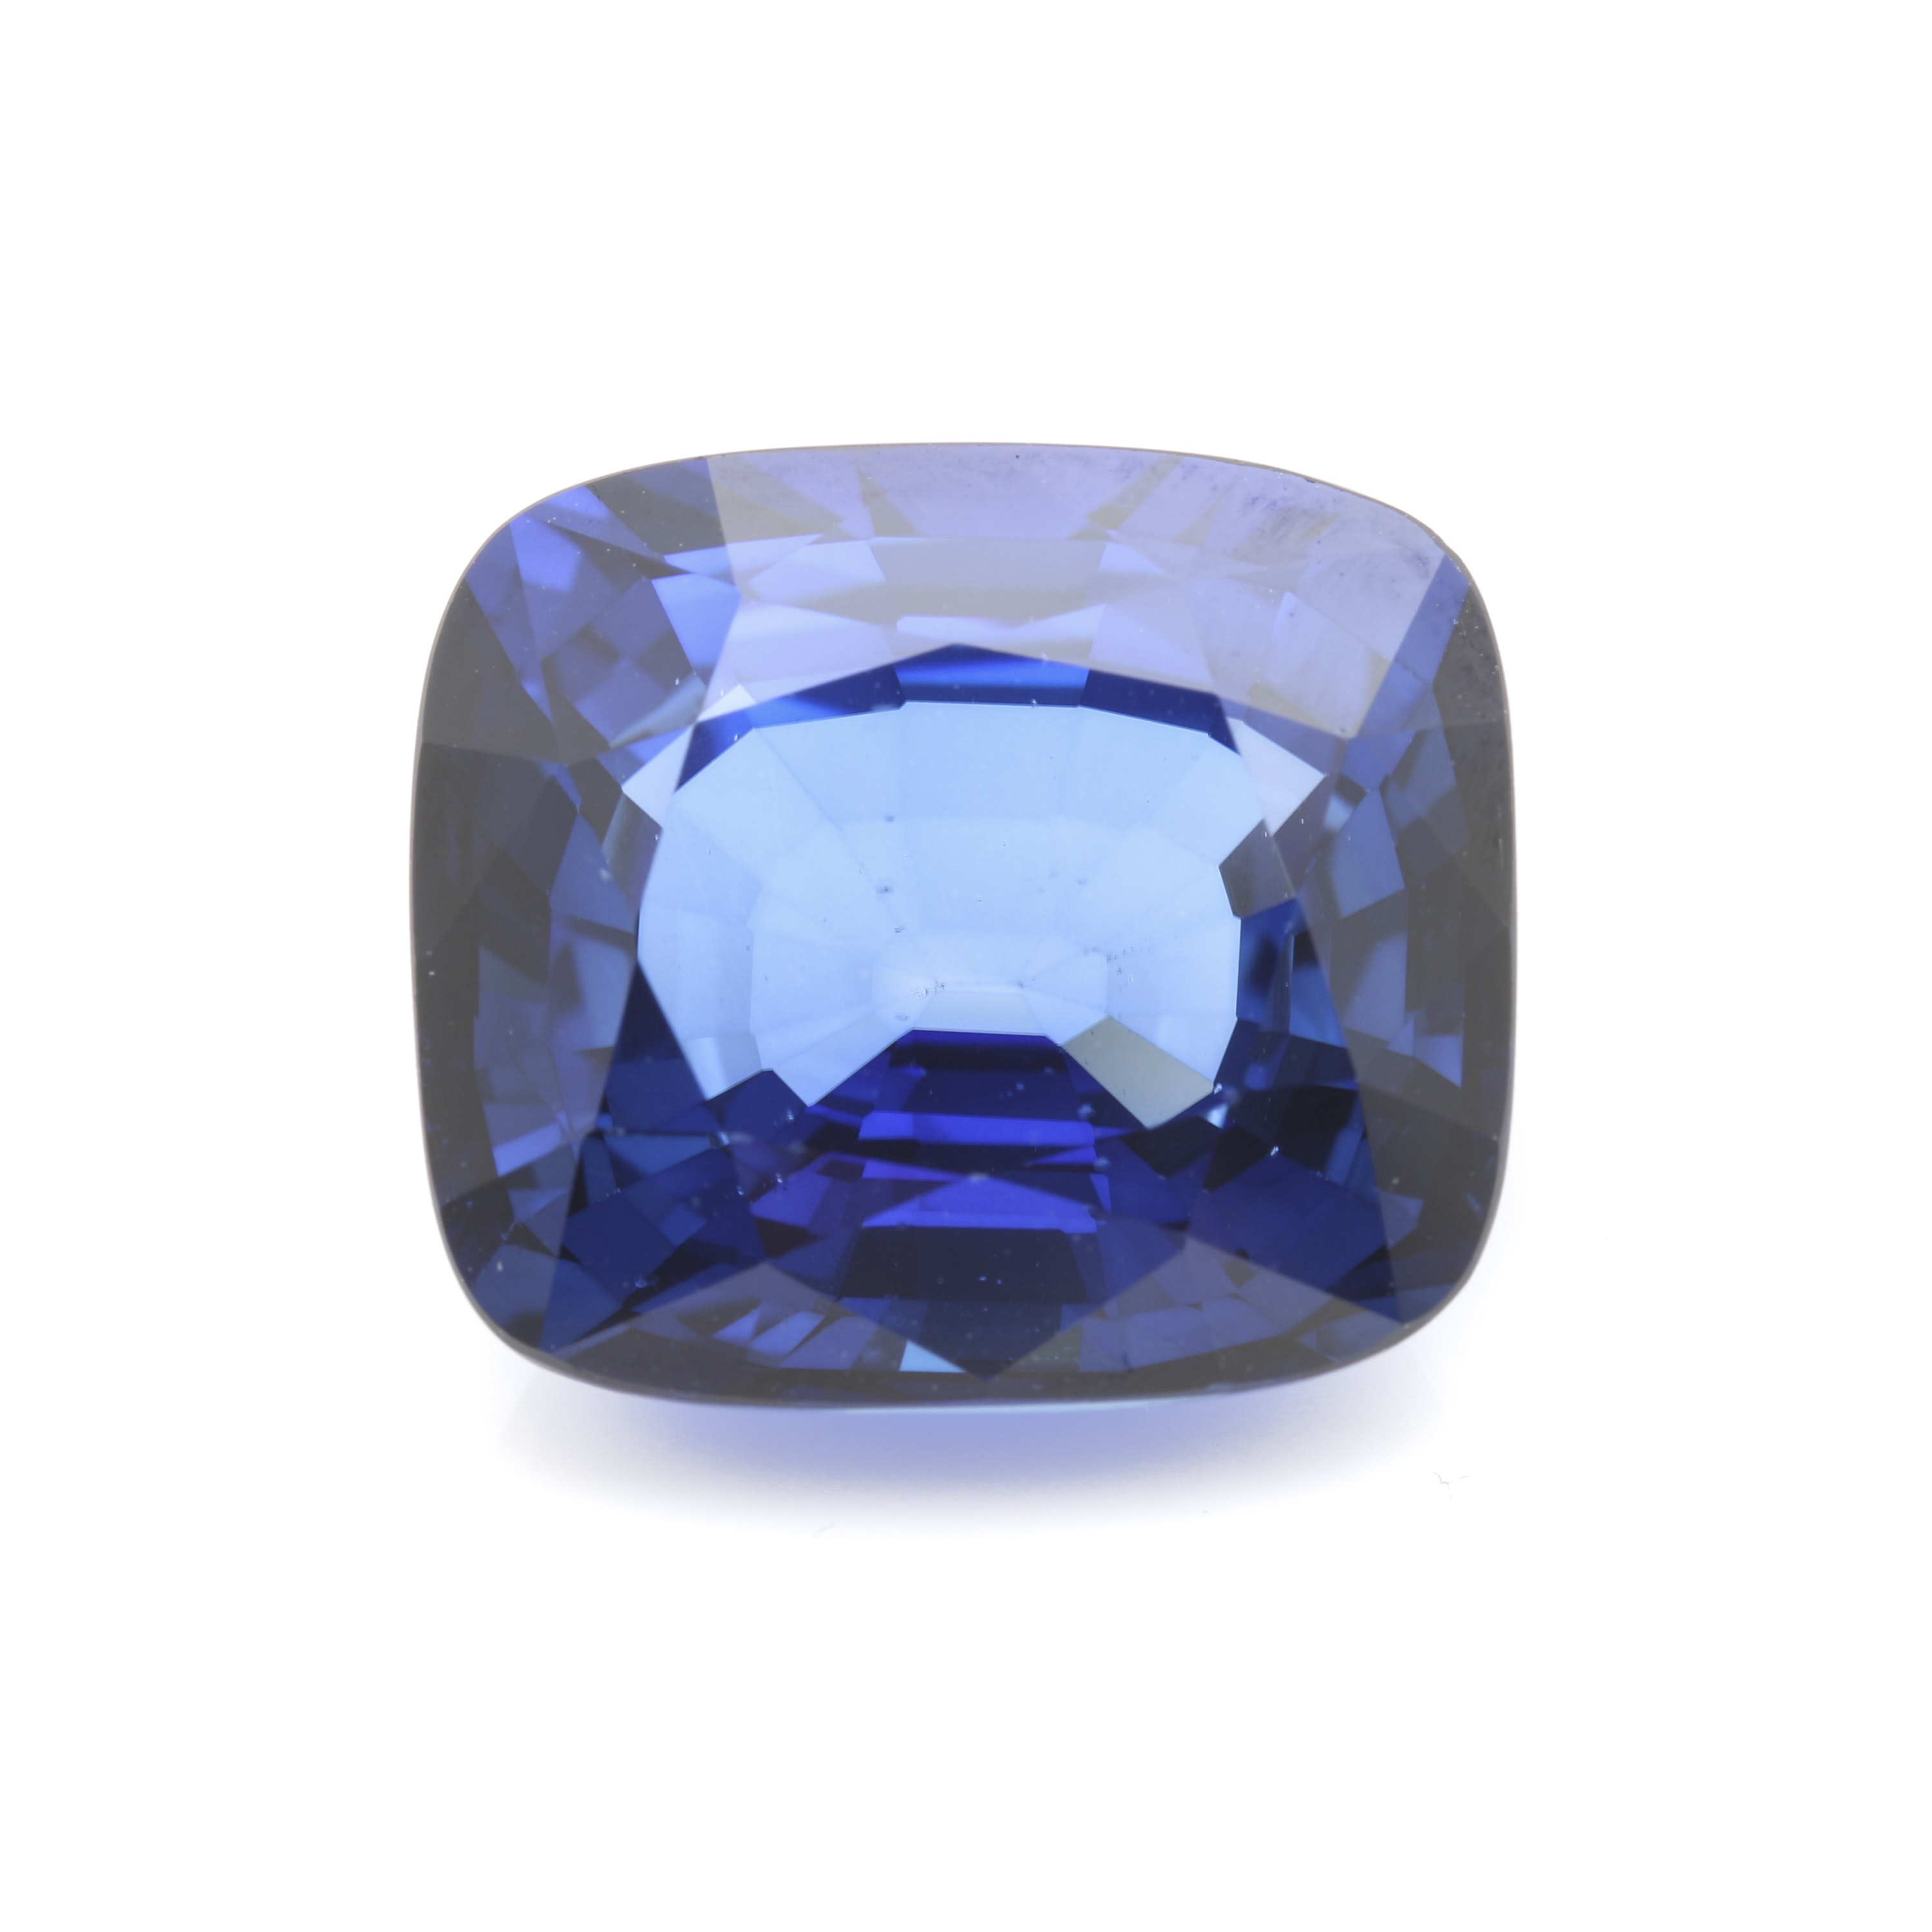 Loose 25.27 CT Sapphire Including GIA Report